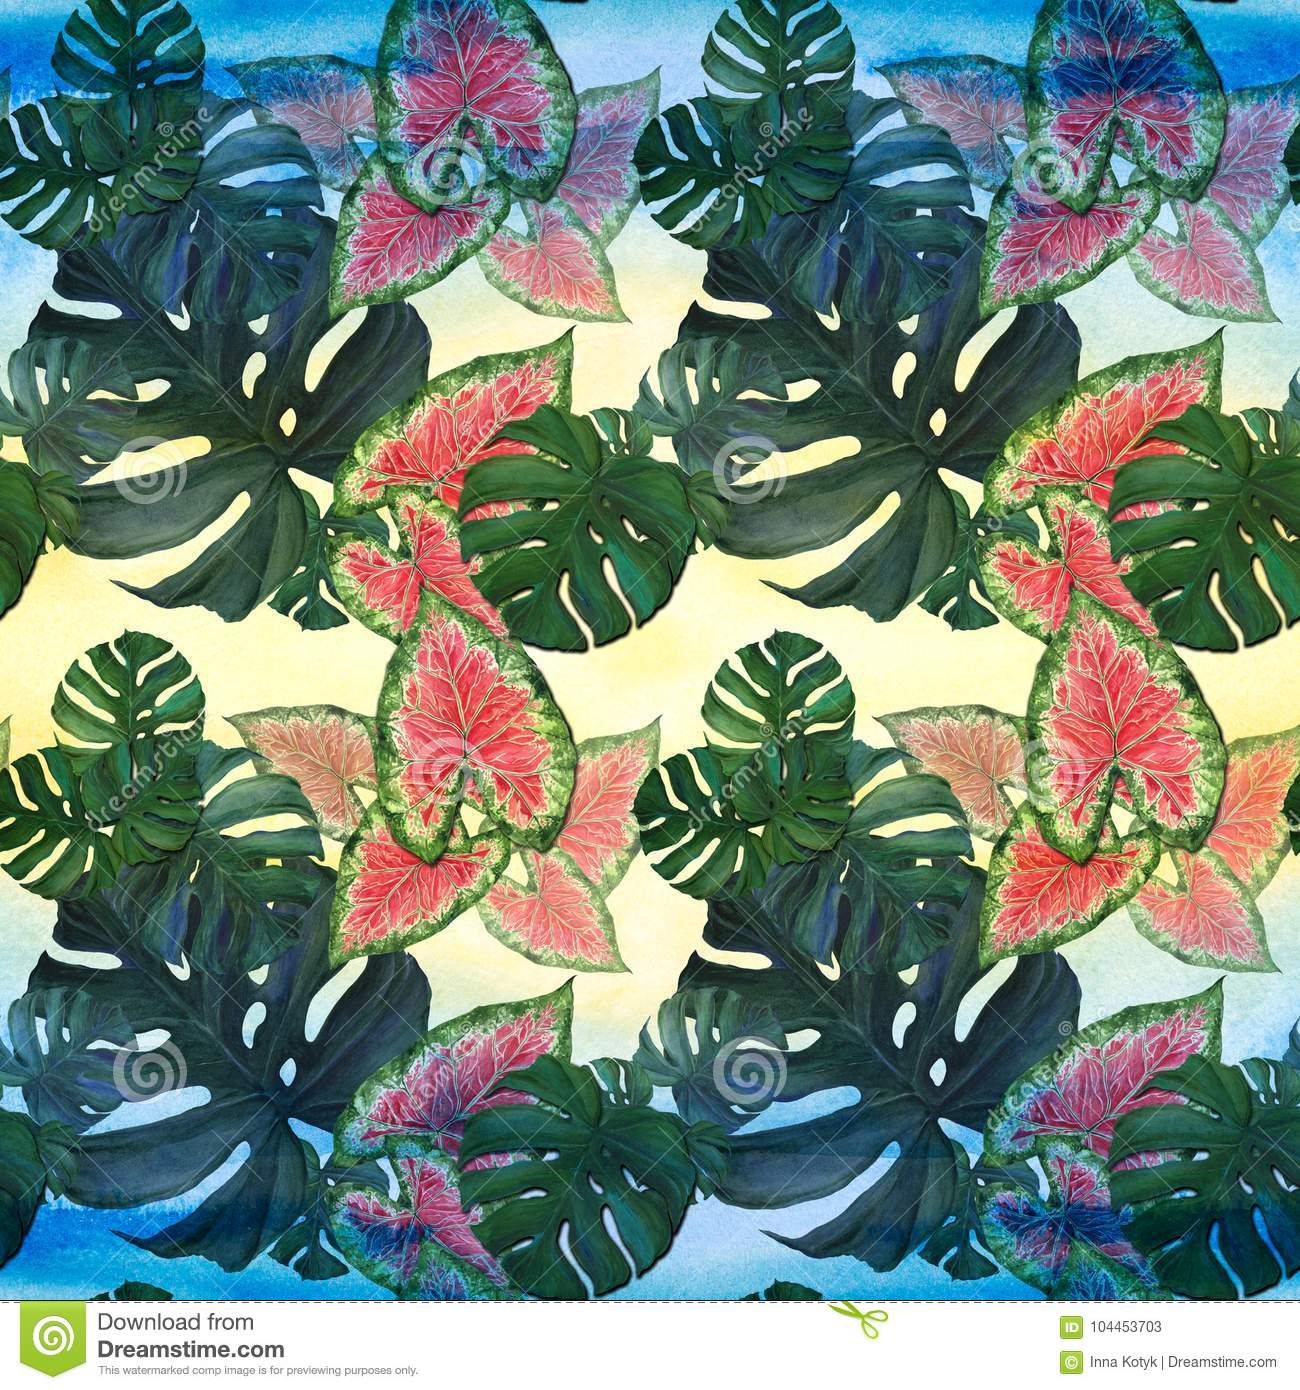 Large Leaves Of Tropical Plants Decorative Composition On A - Large decorative maps